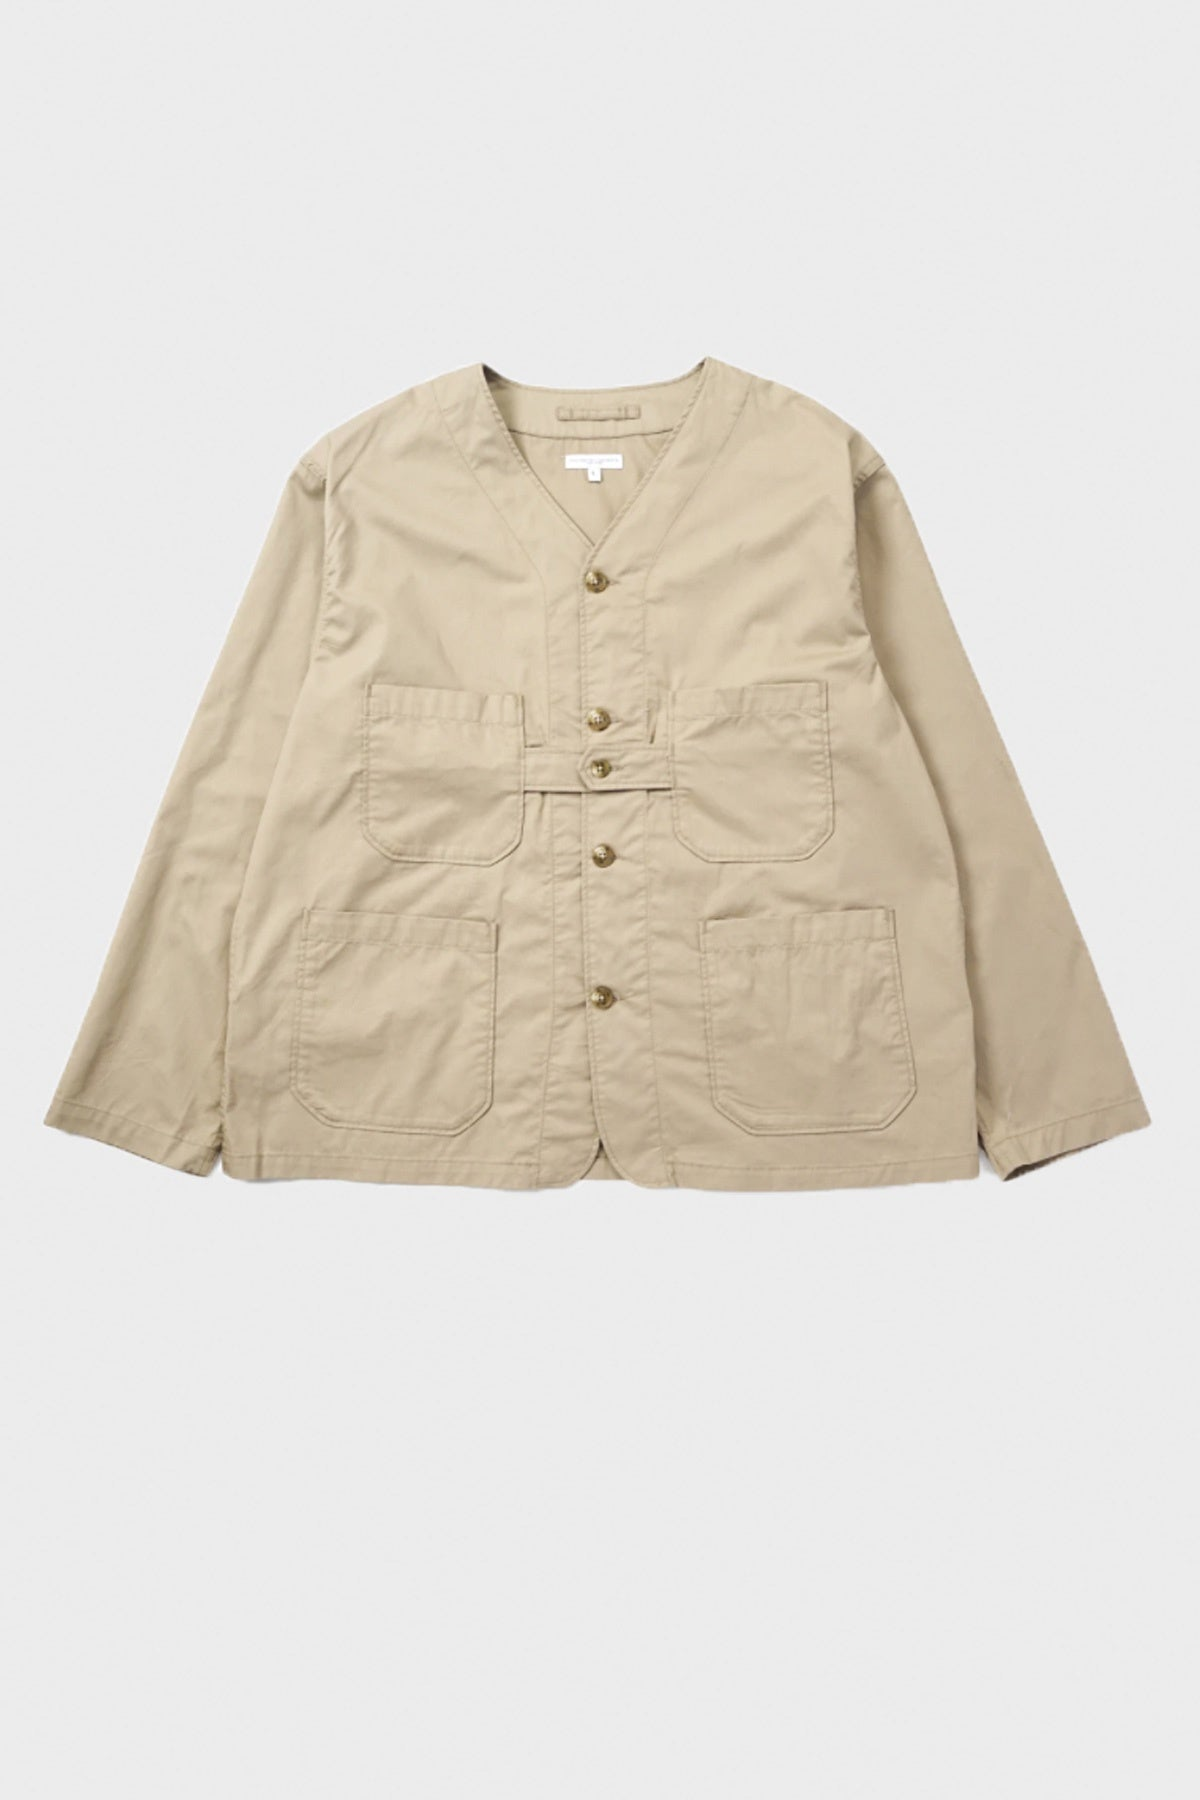 Engineered Garments - Cardigan Jacket - Khaki Twill - Canoe Club